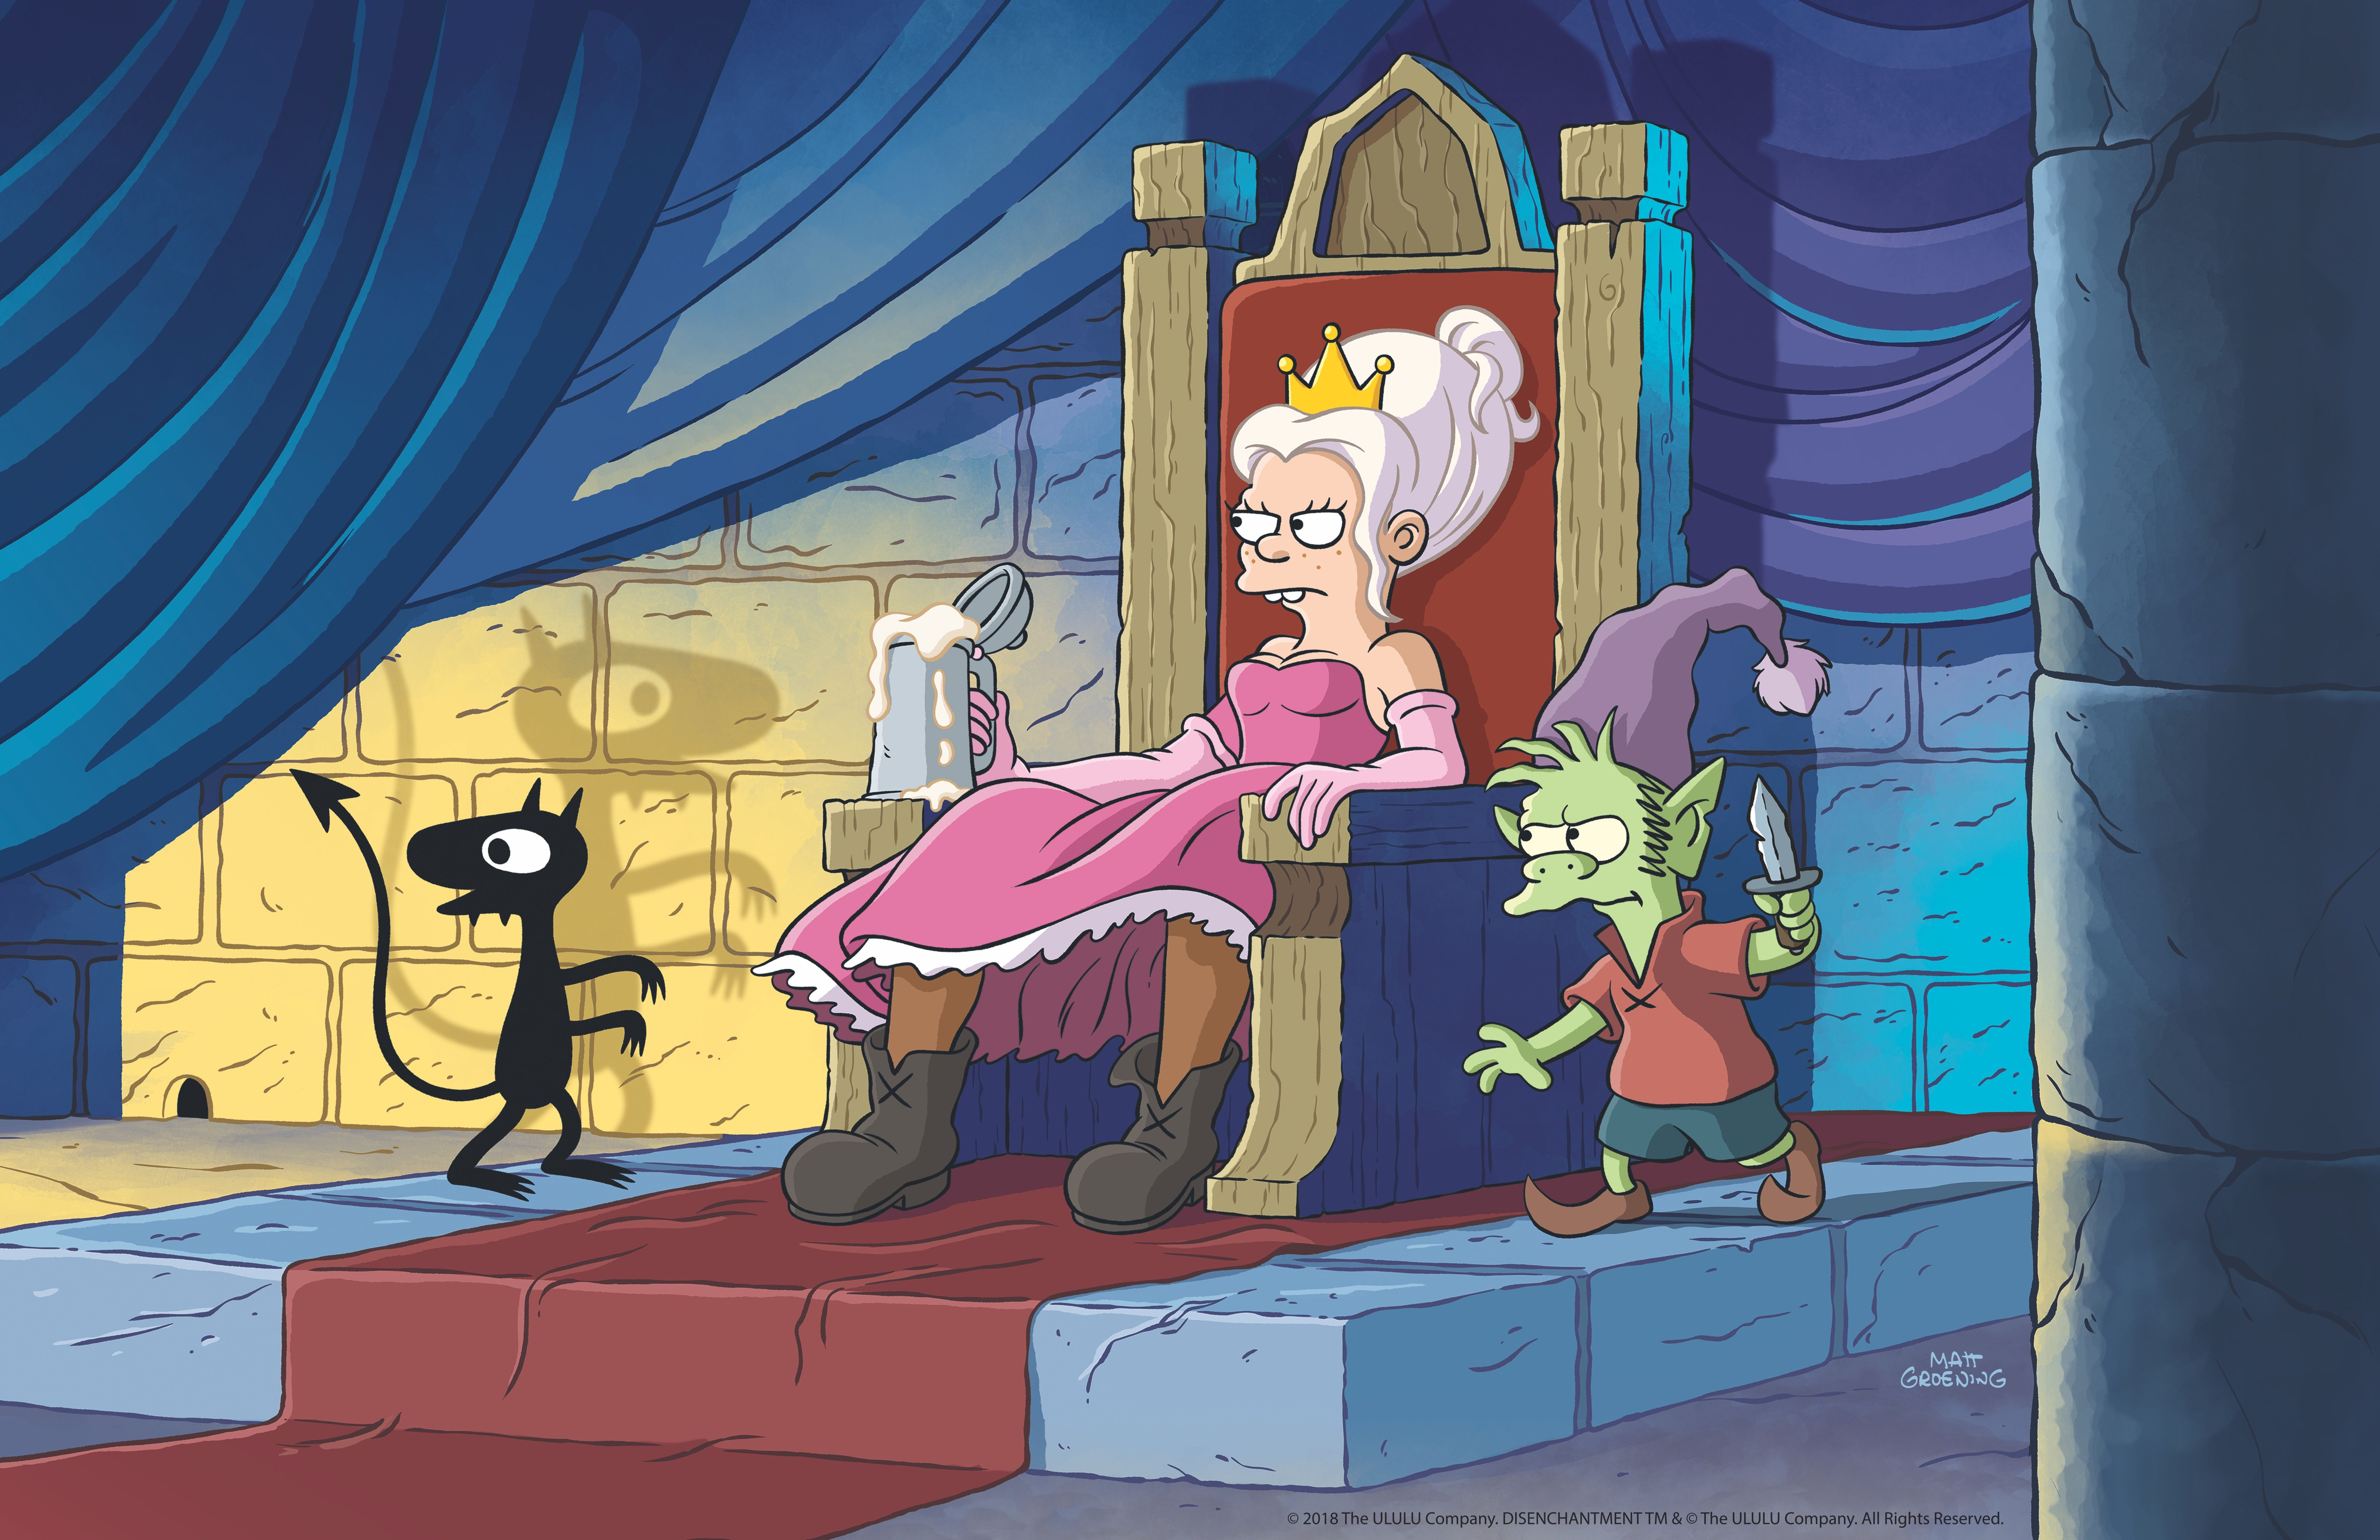 Disenchantment Review: Groening's Netflix Series Is an ...